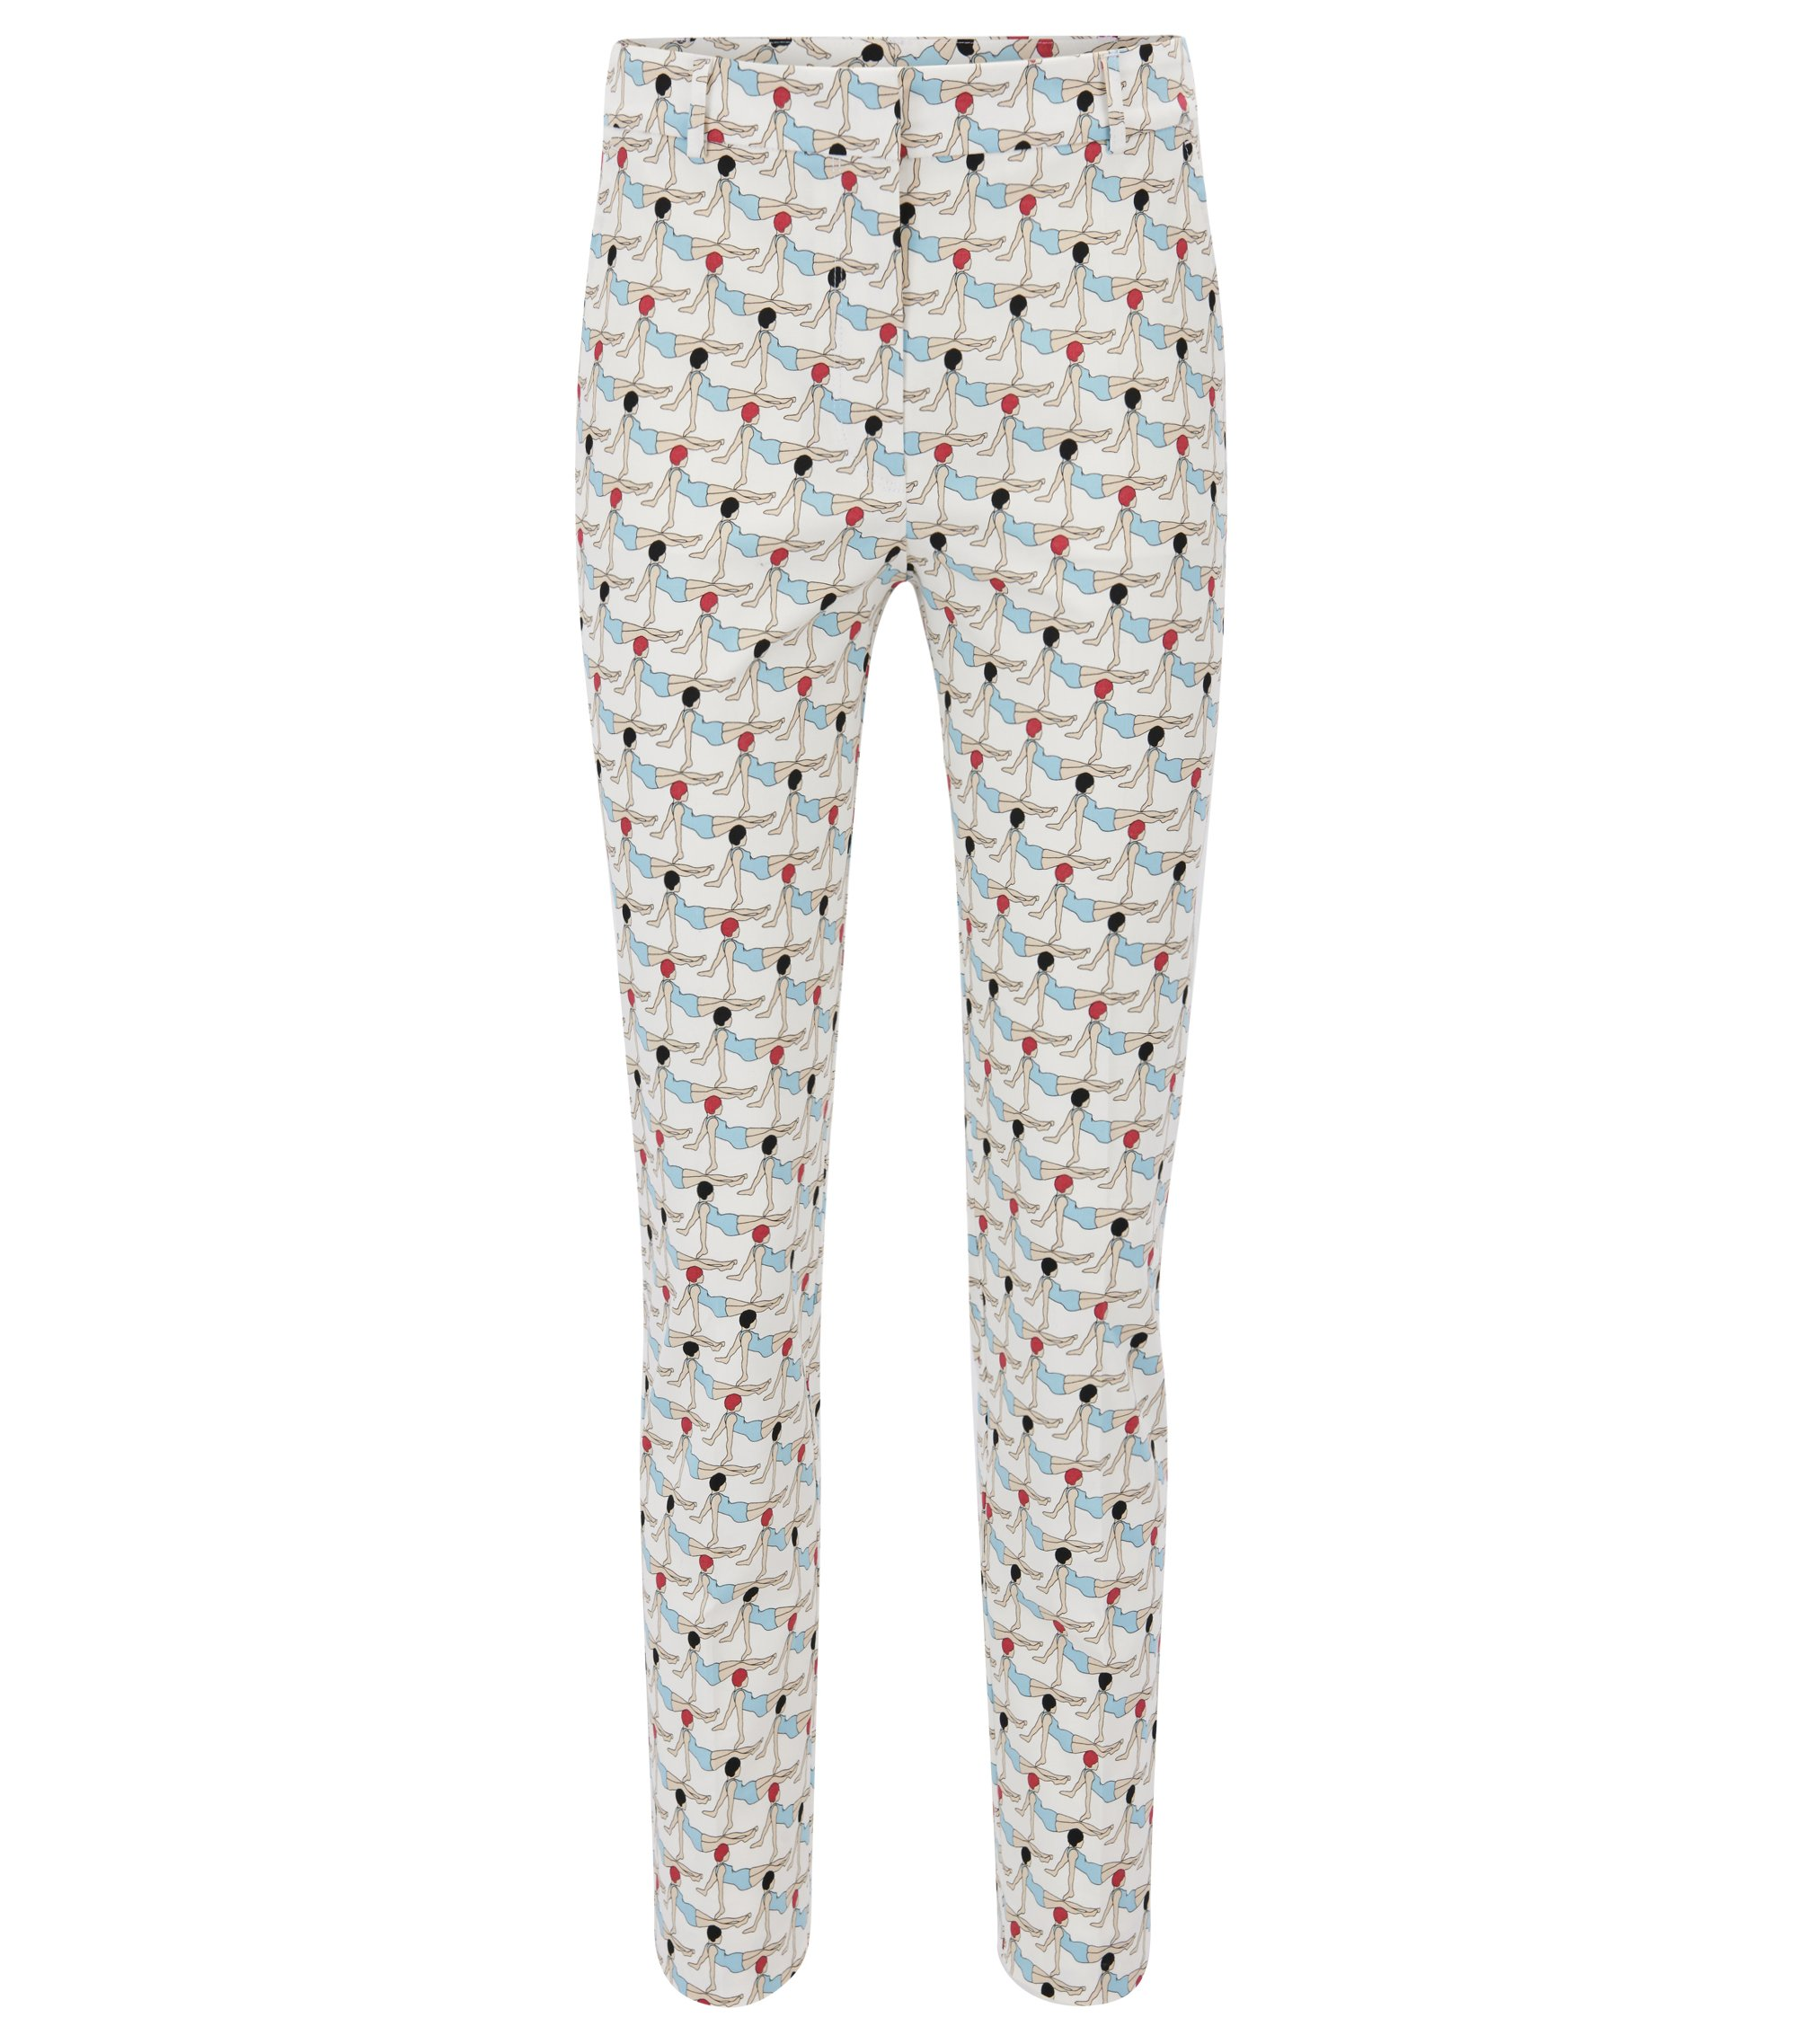 Pantalon Regular Fit en coton stretch imprimé, Fantaisie